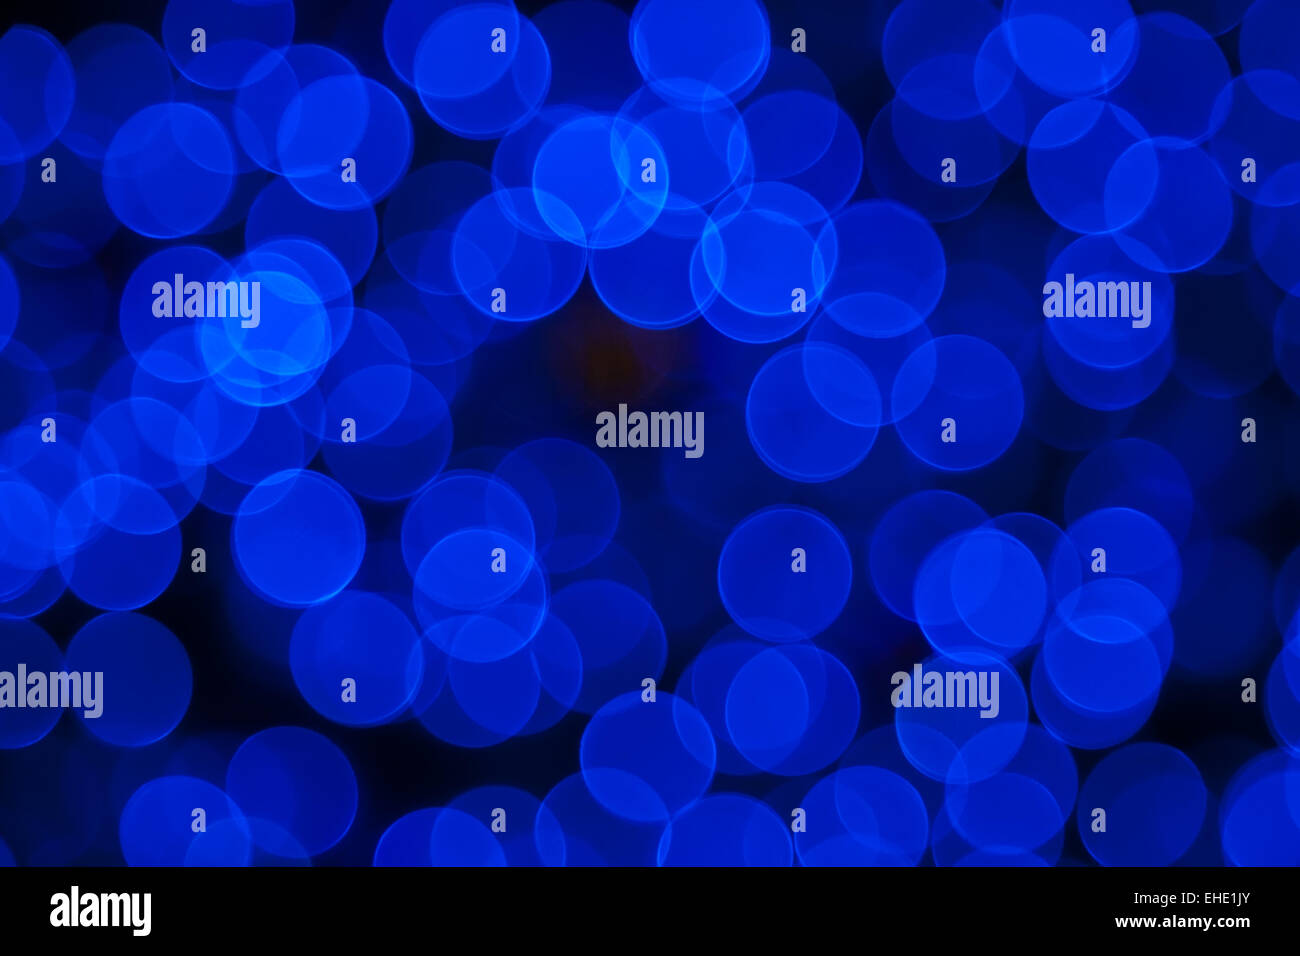 Blue abstract lights background - Stock Image